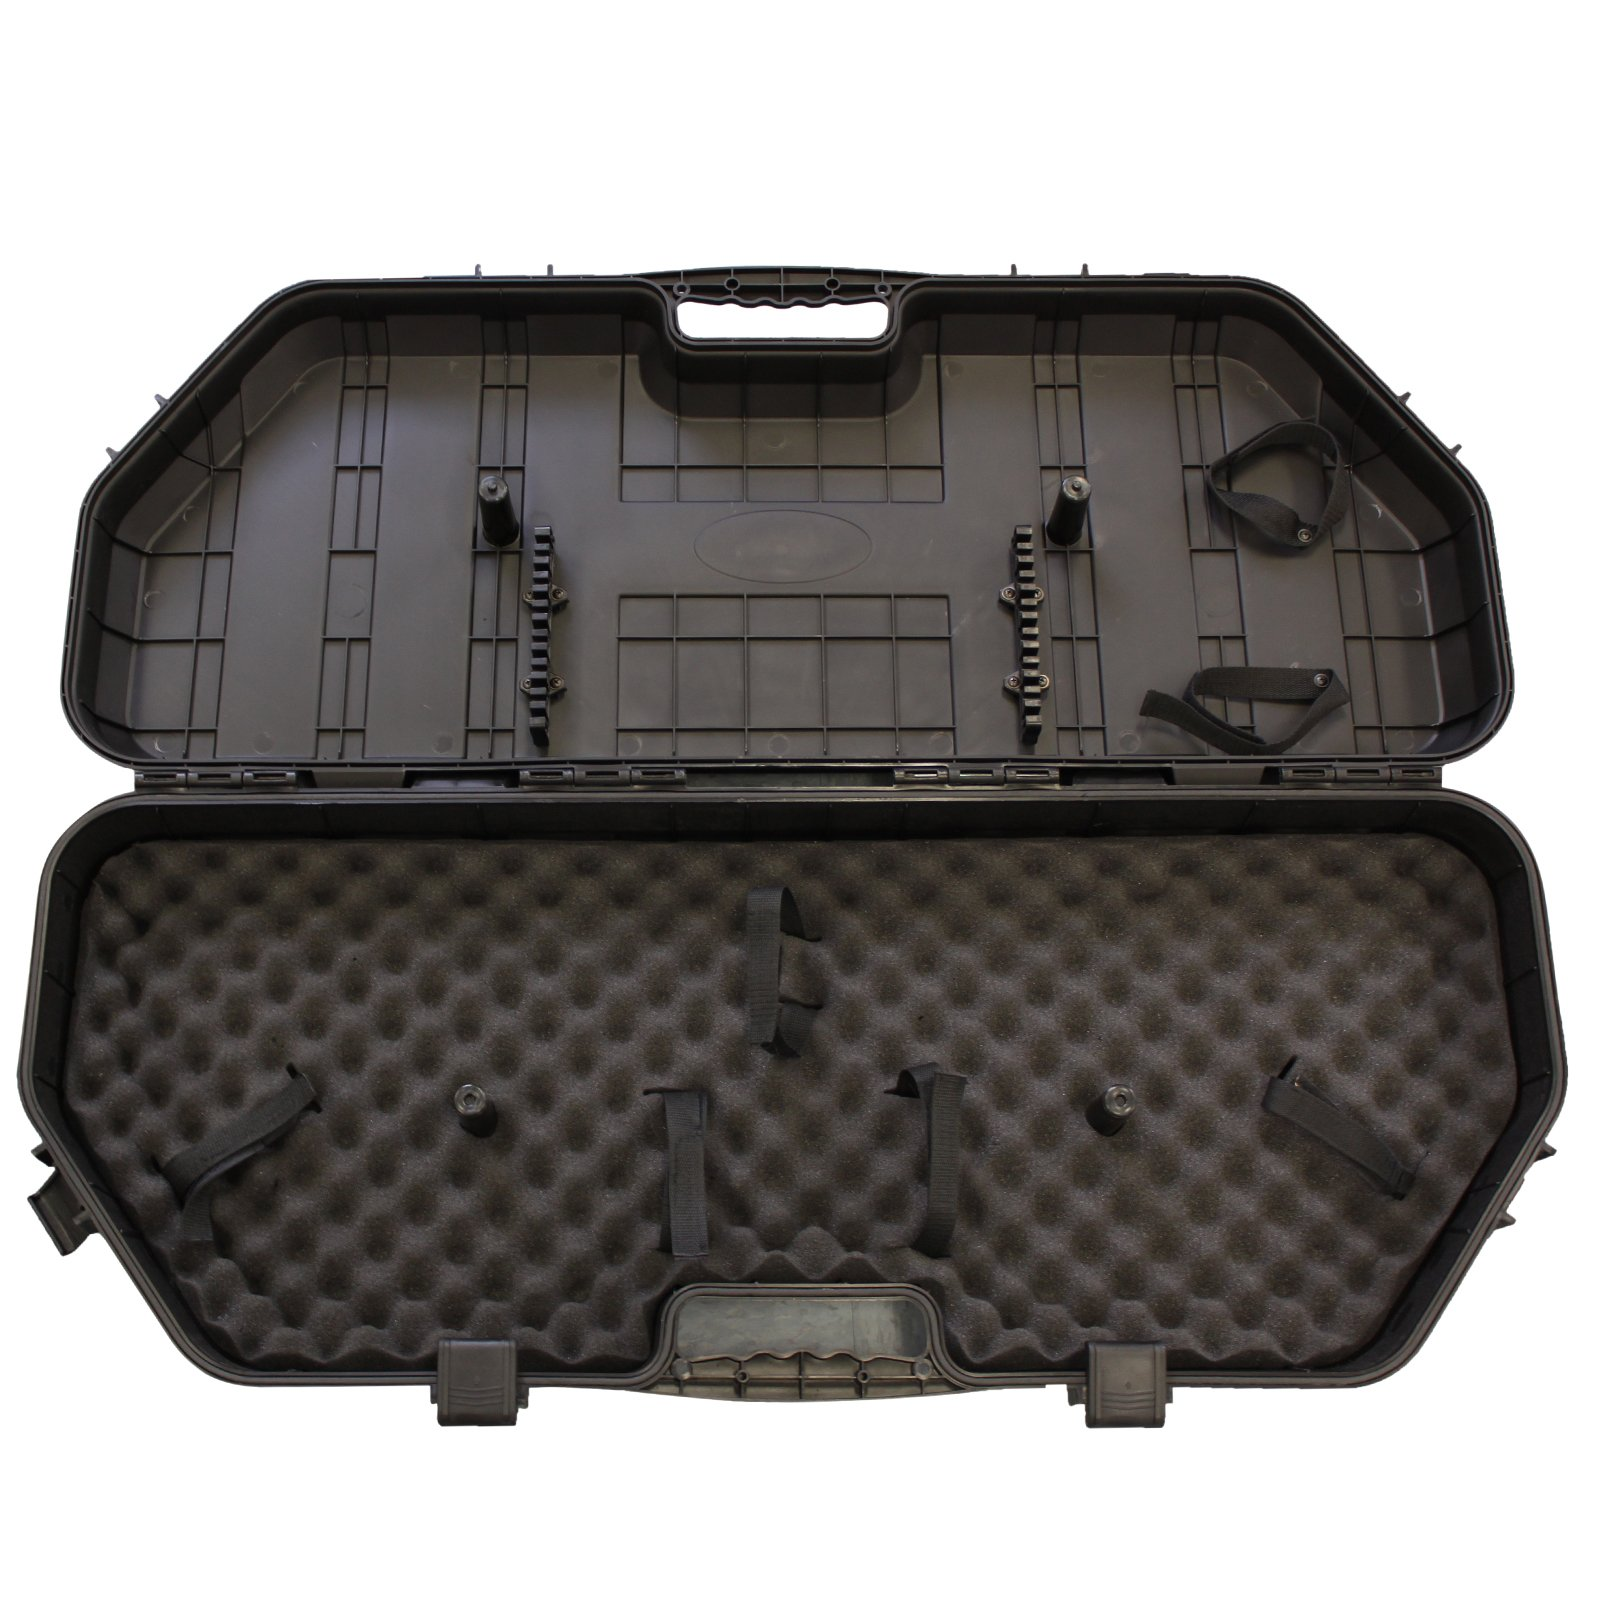 SAS Compound Bow Travel Flight Hard Case by Southland Archery Supply (Image #2)